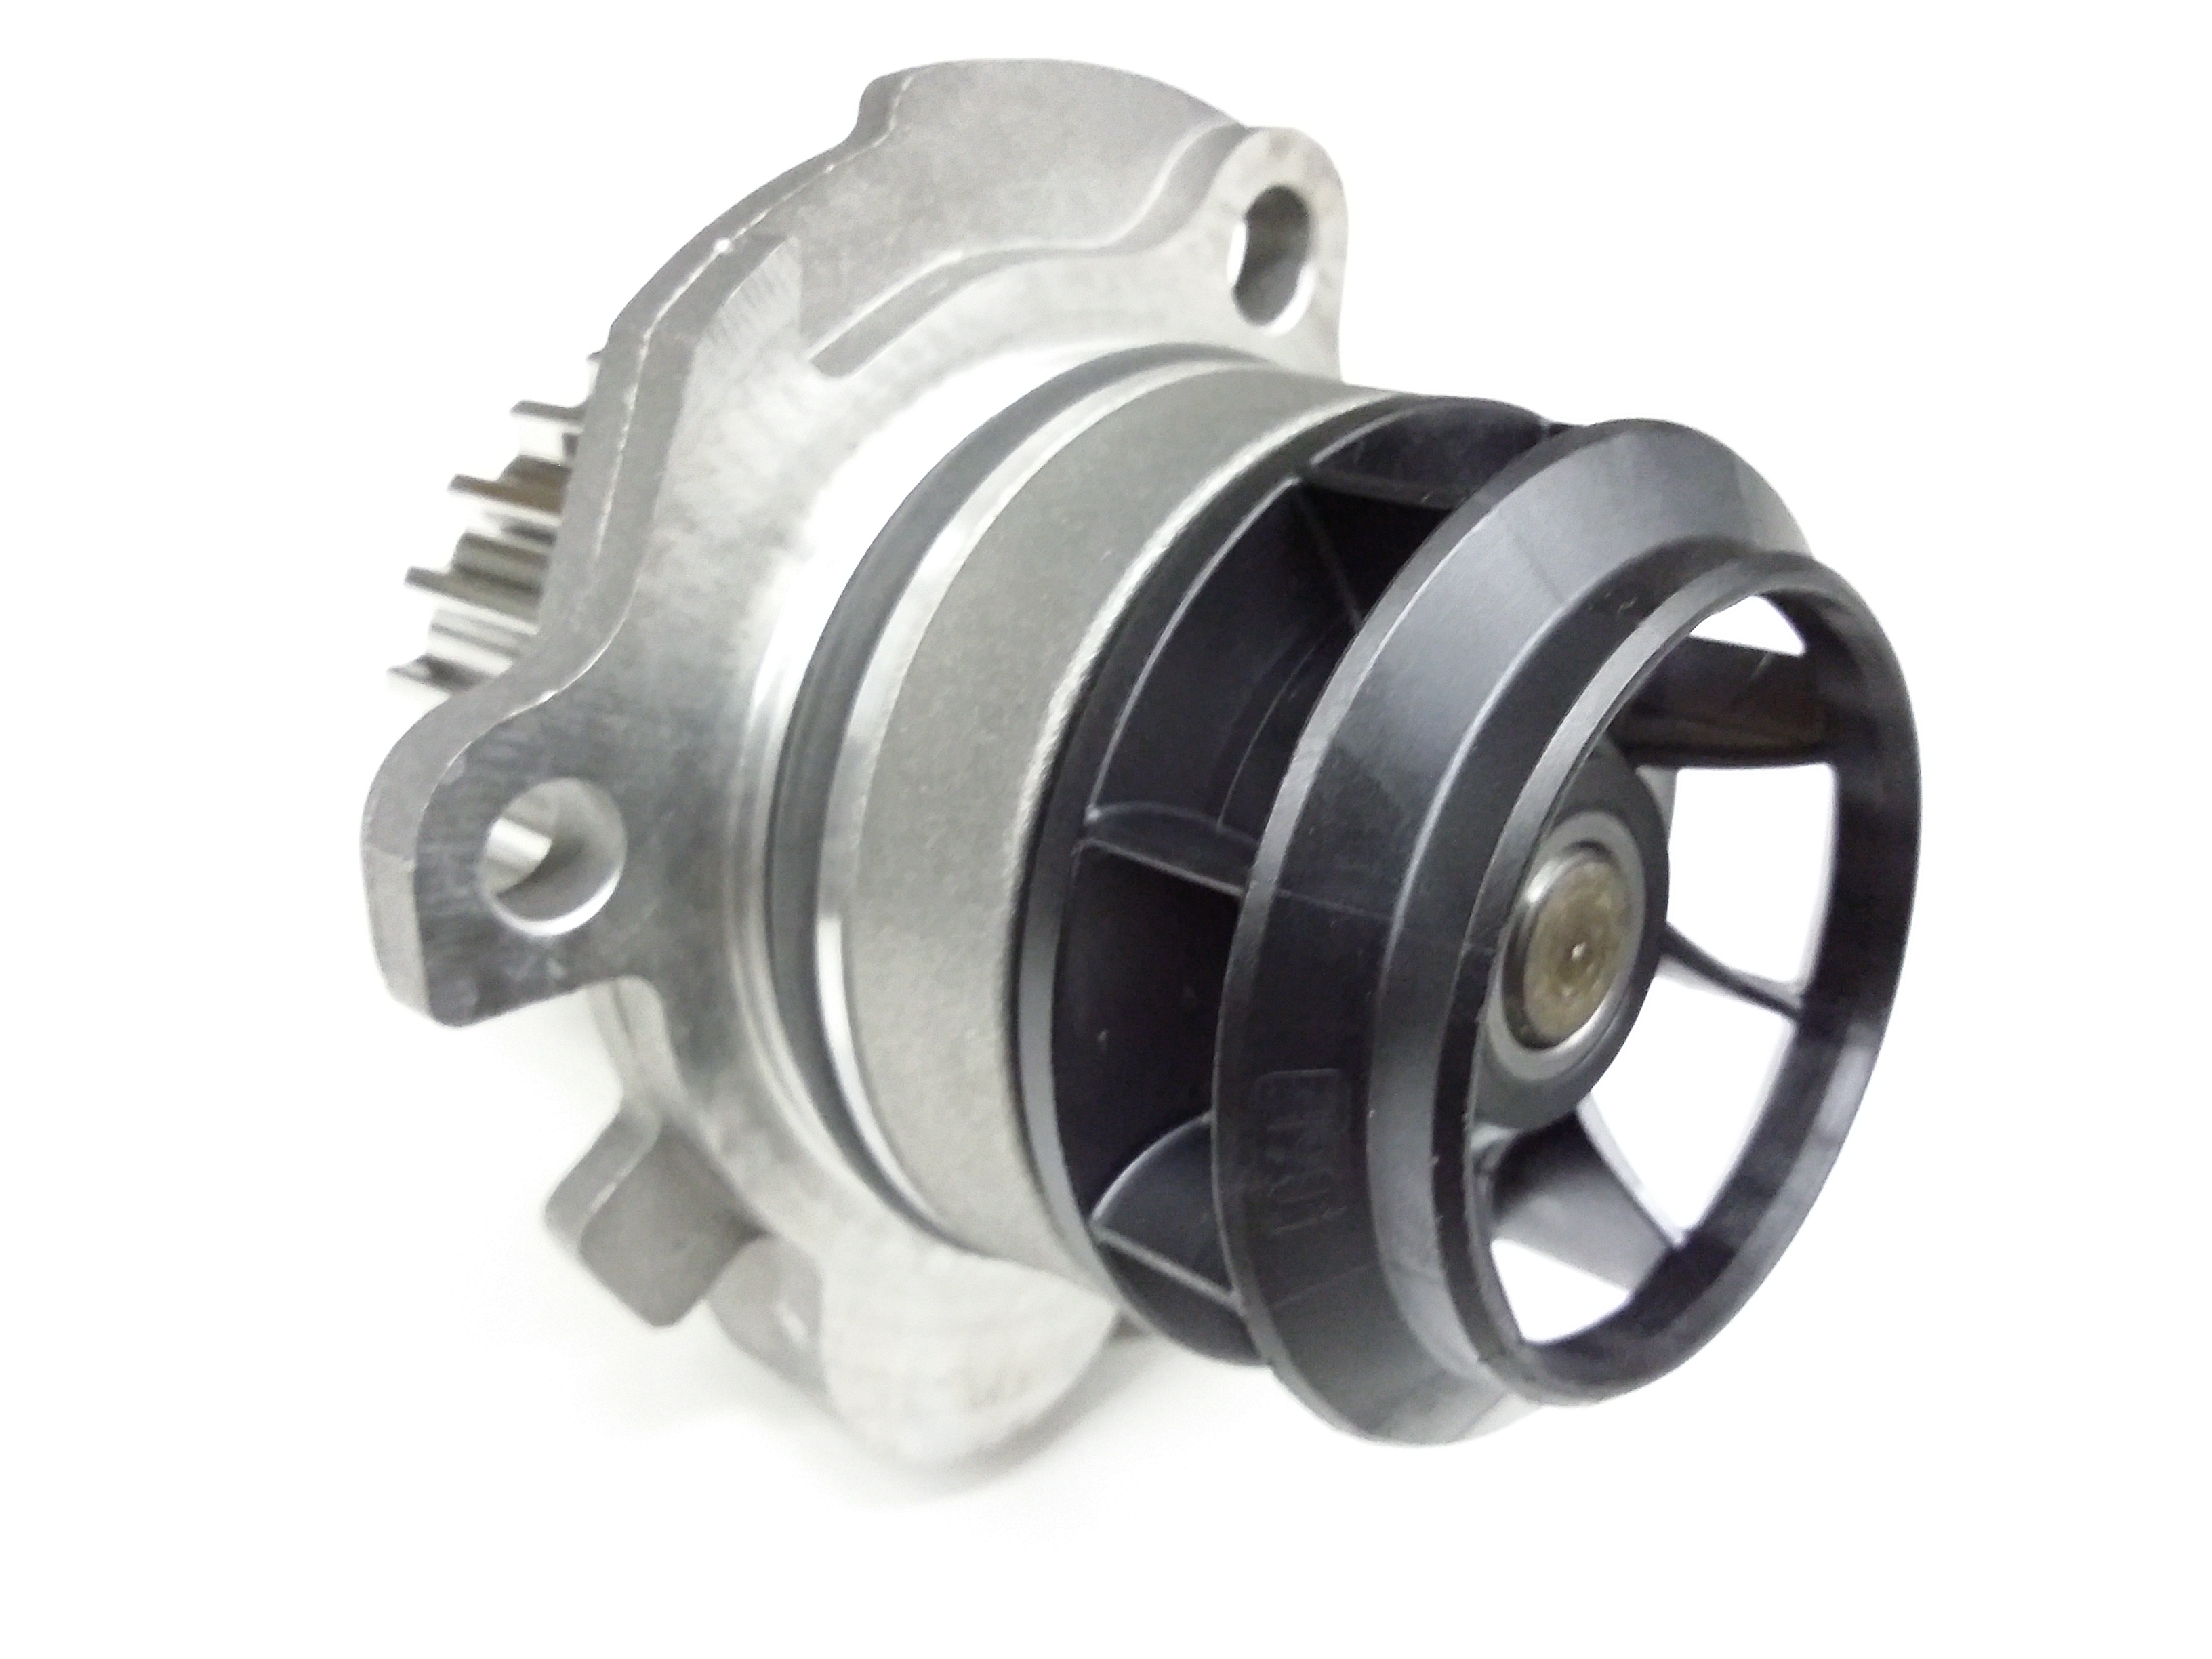 Audi A4 Quattro Avant 5-AT 3.0L Water pump with gasket ...